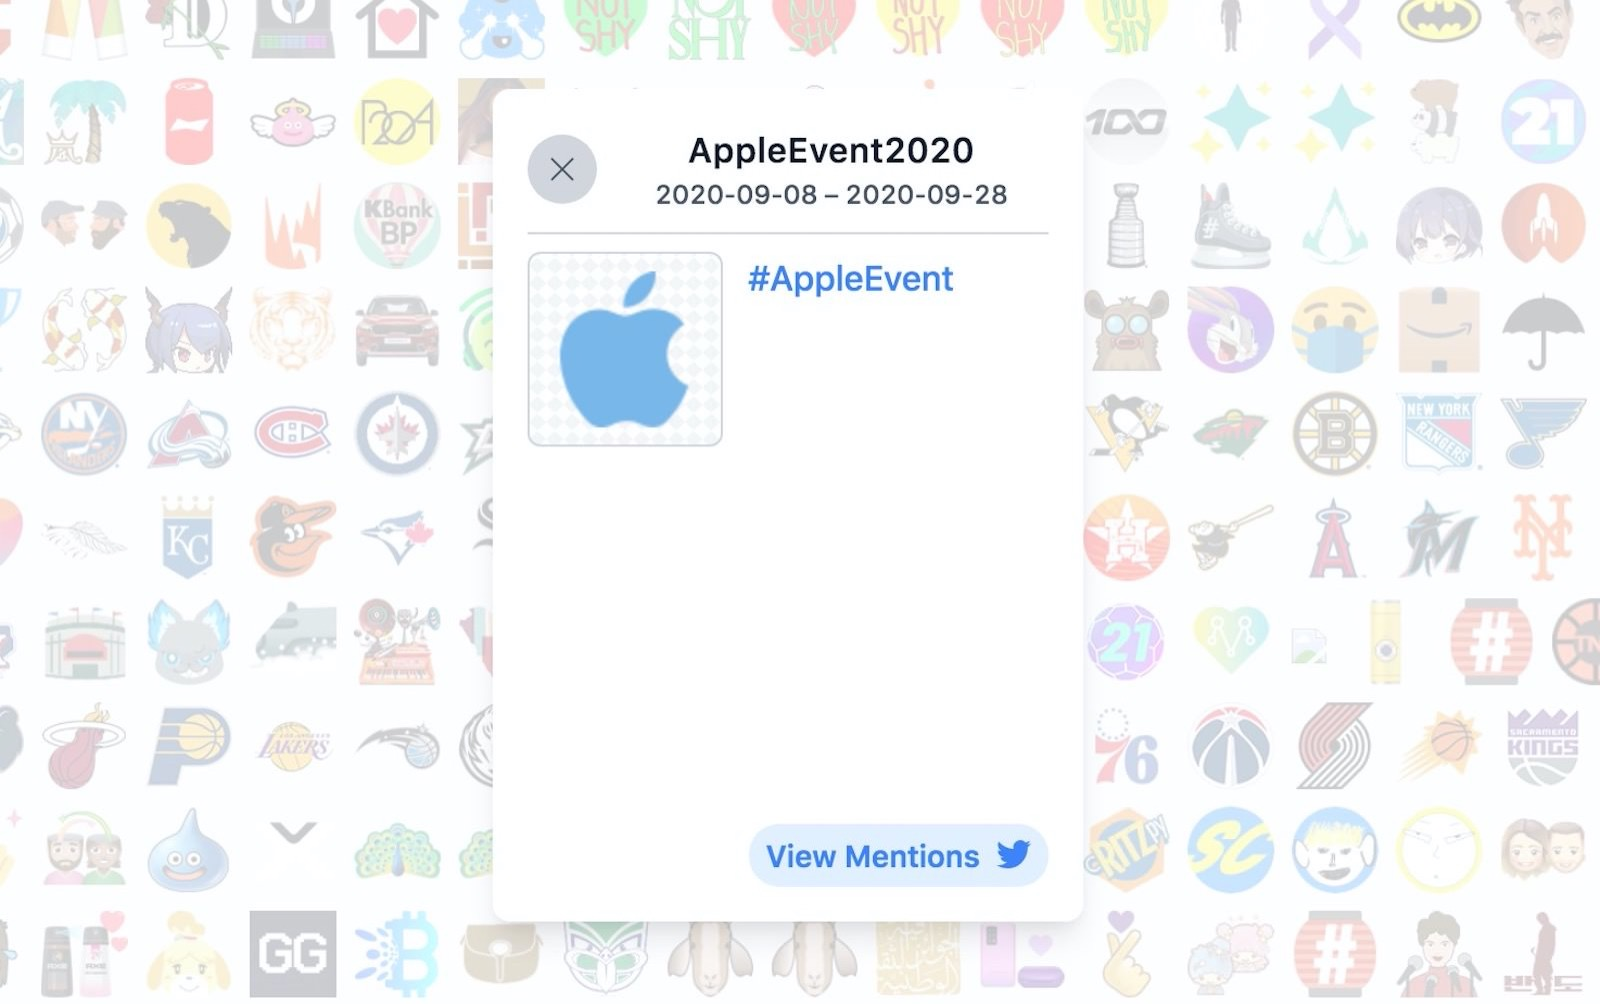 Hasthtag browser applevent2020